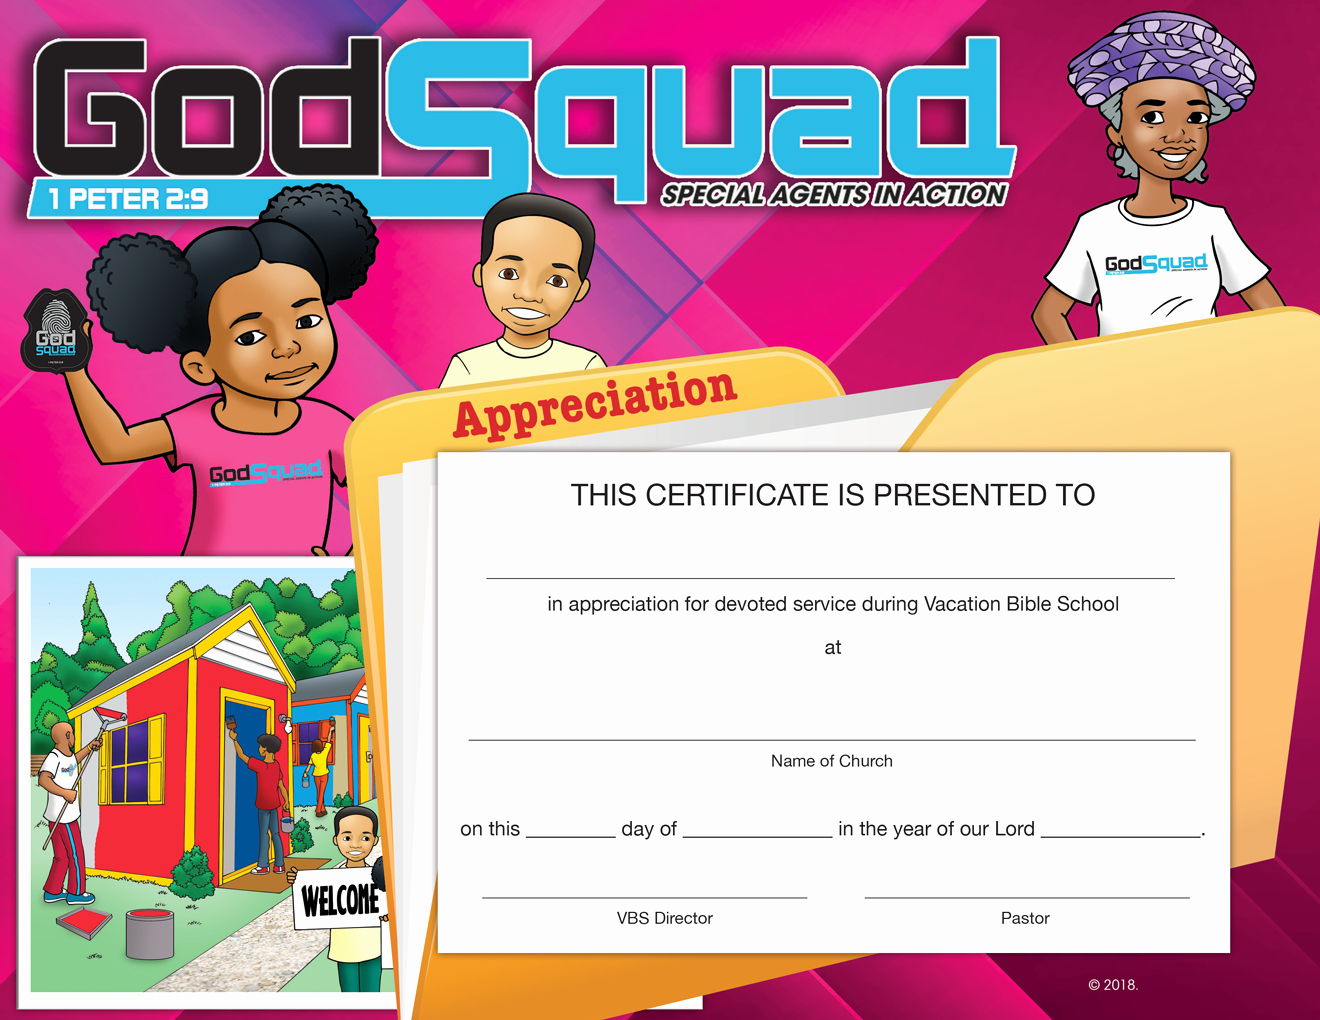 Vbs Certificate Of attendance Best Of Vbs Godsquad Certificate Of Perfect attendance